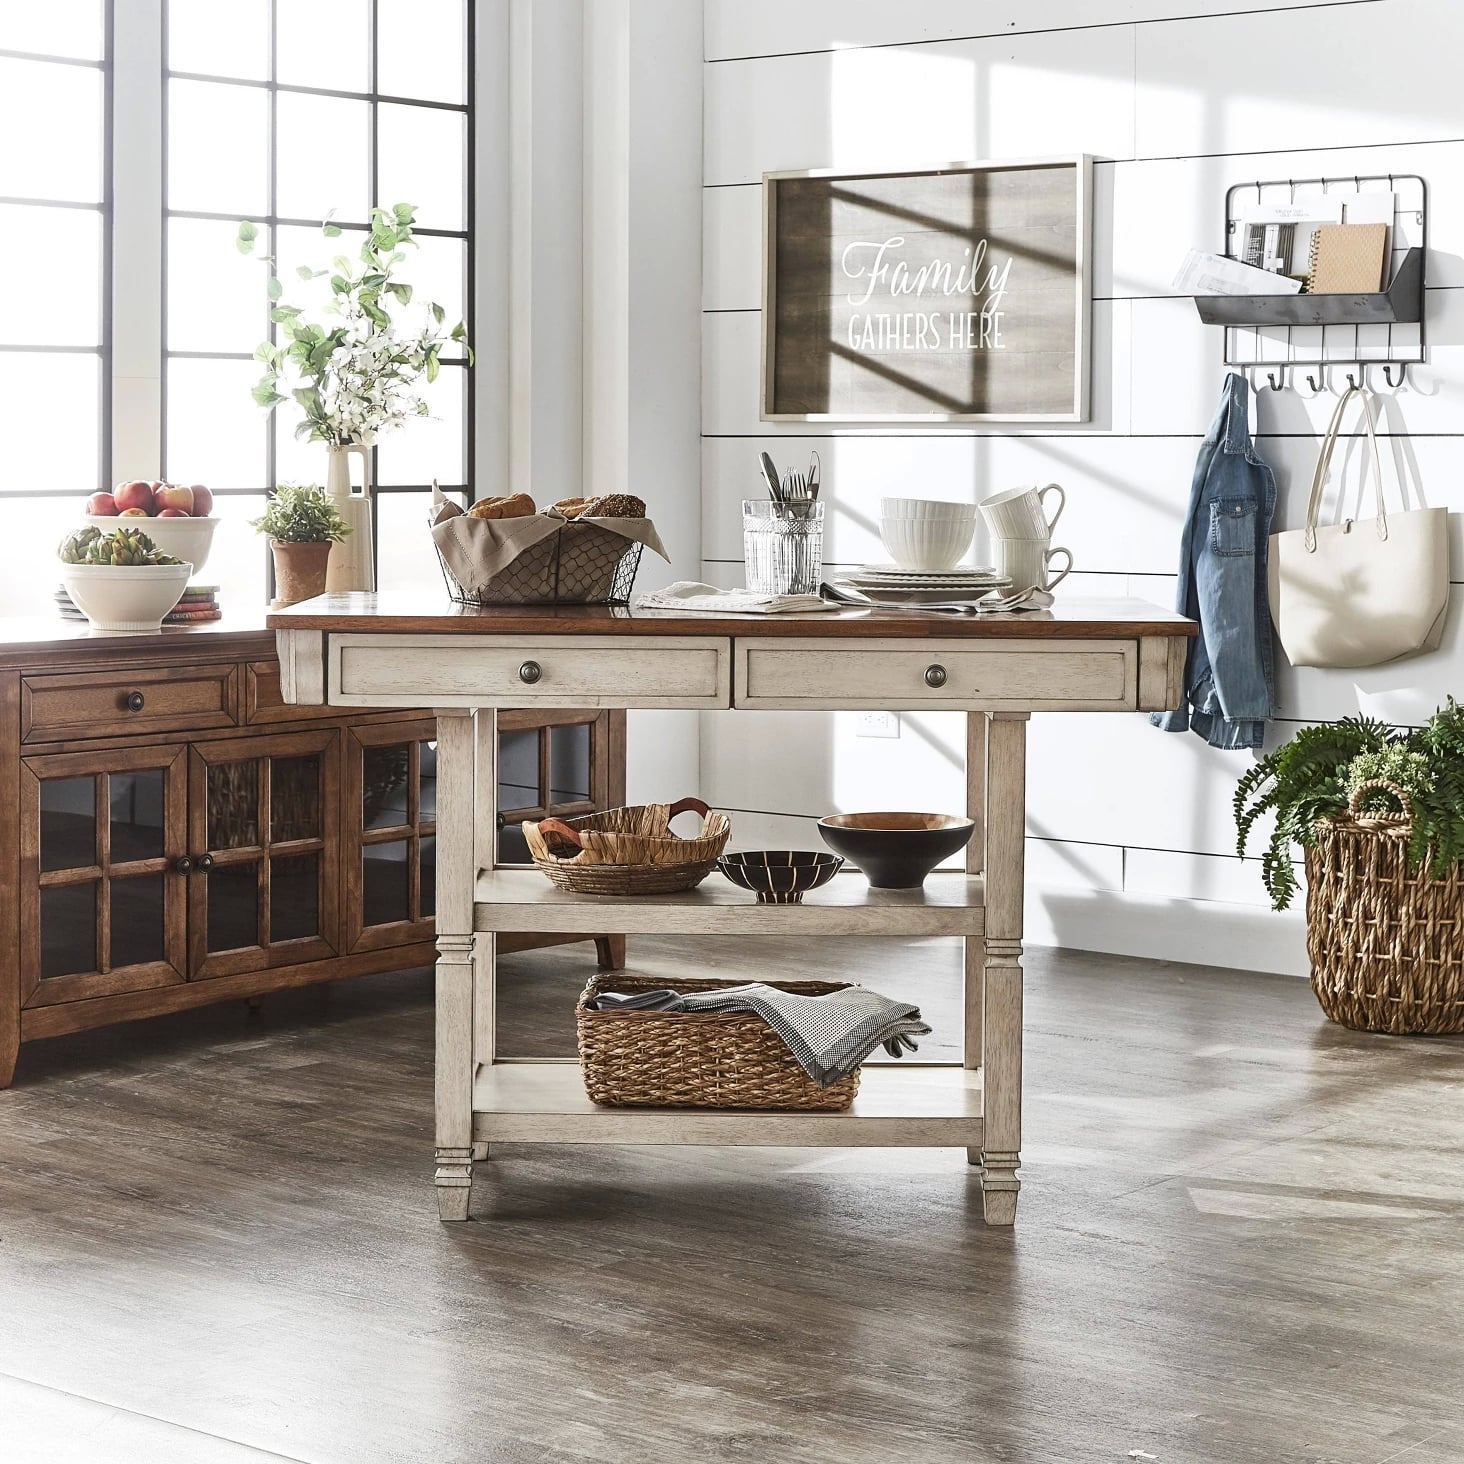 Keyla Antique Two Tone Kitchen Island Keep Your Kitchen Tidy With These 55 Space Saving Furniture Pieces All From Target Popsugar Home Photo 19